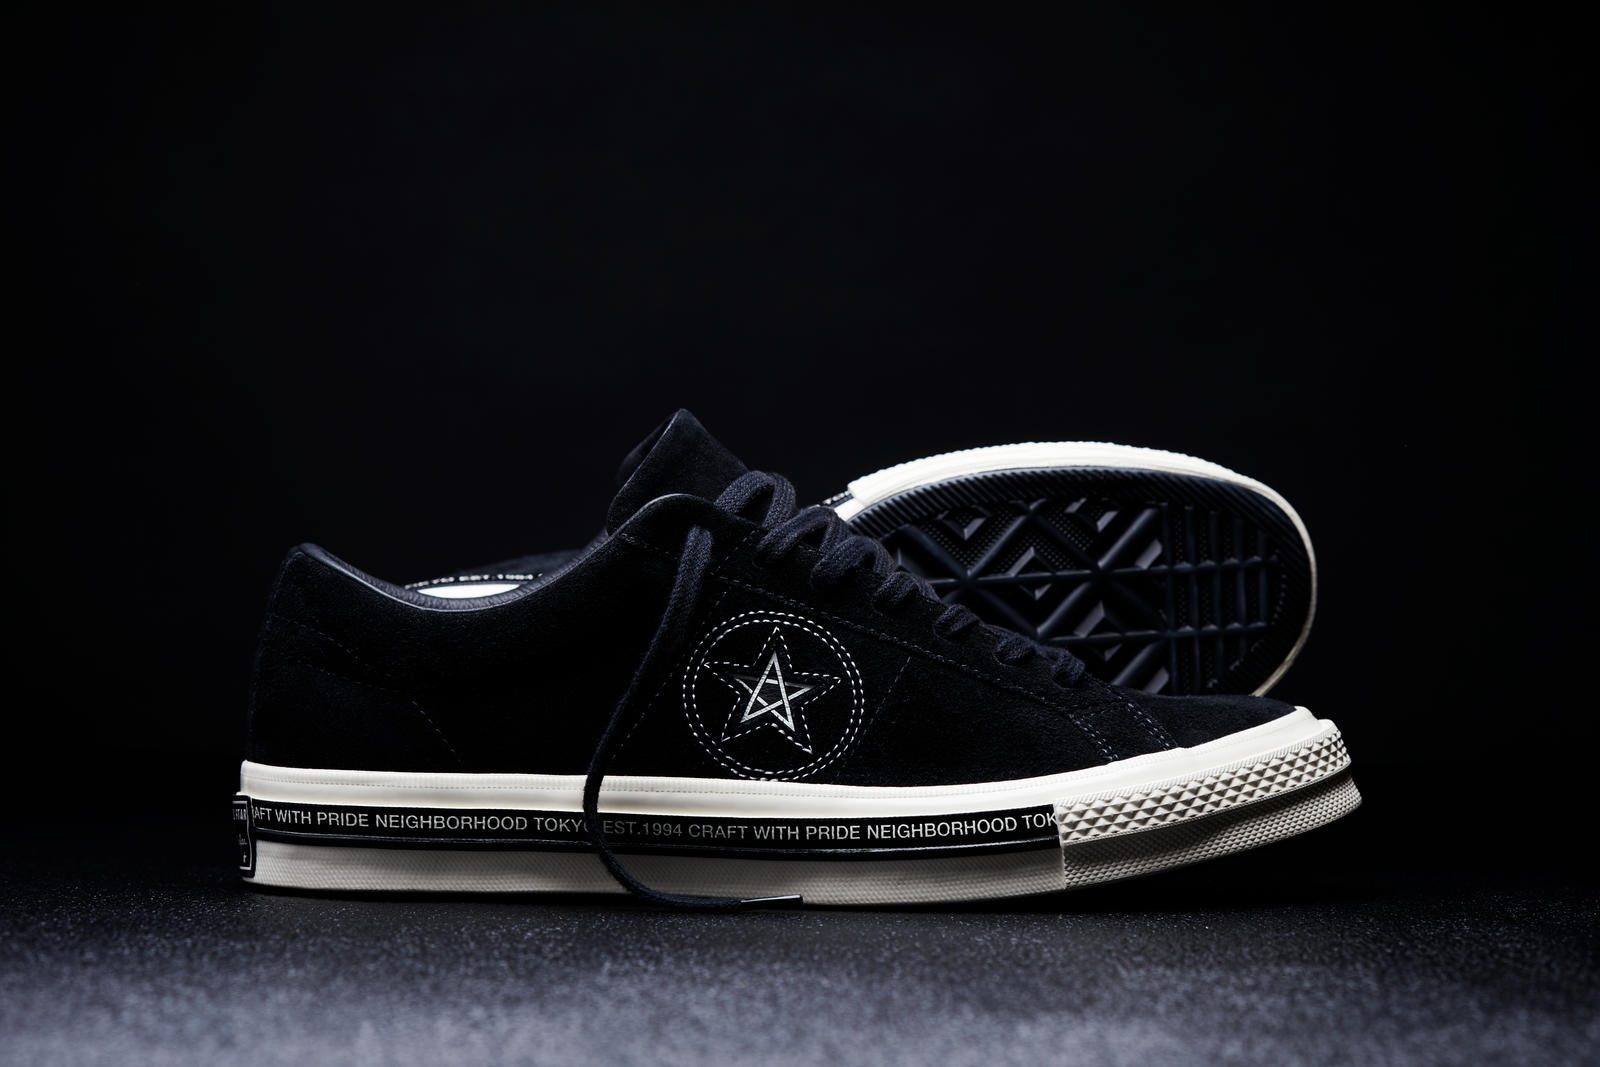 1233d05022cab Converse and Neighborhood Announce New Moto-Inspired Collaboration 2. The  Converse x Neighborhood One Star  74 ...